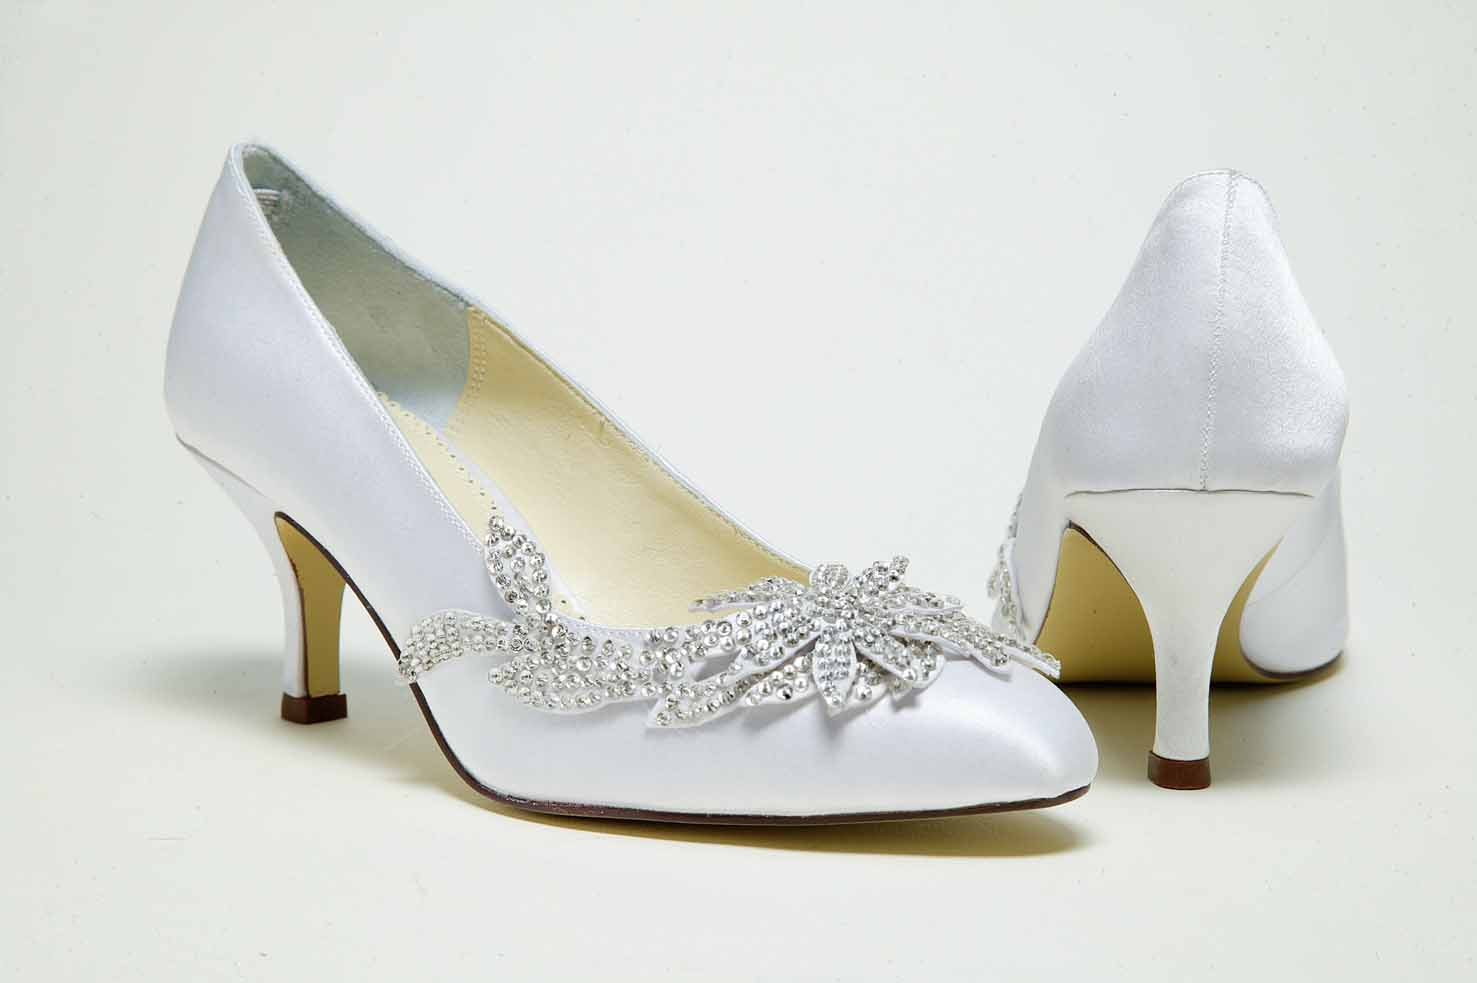 silver bridal shoes low heel photo - 1